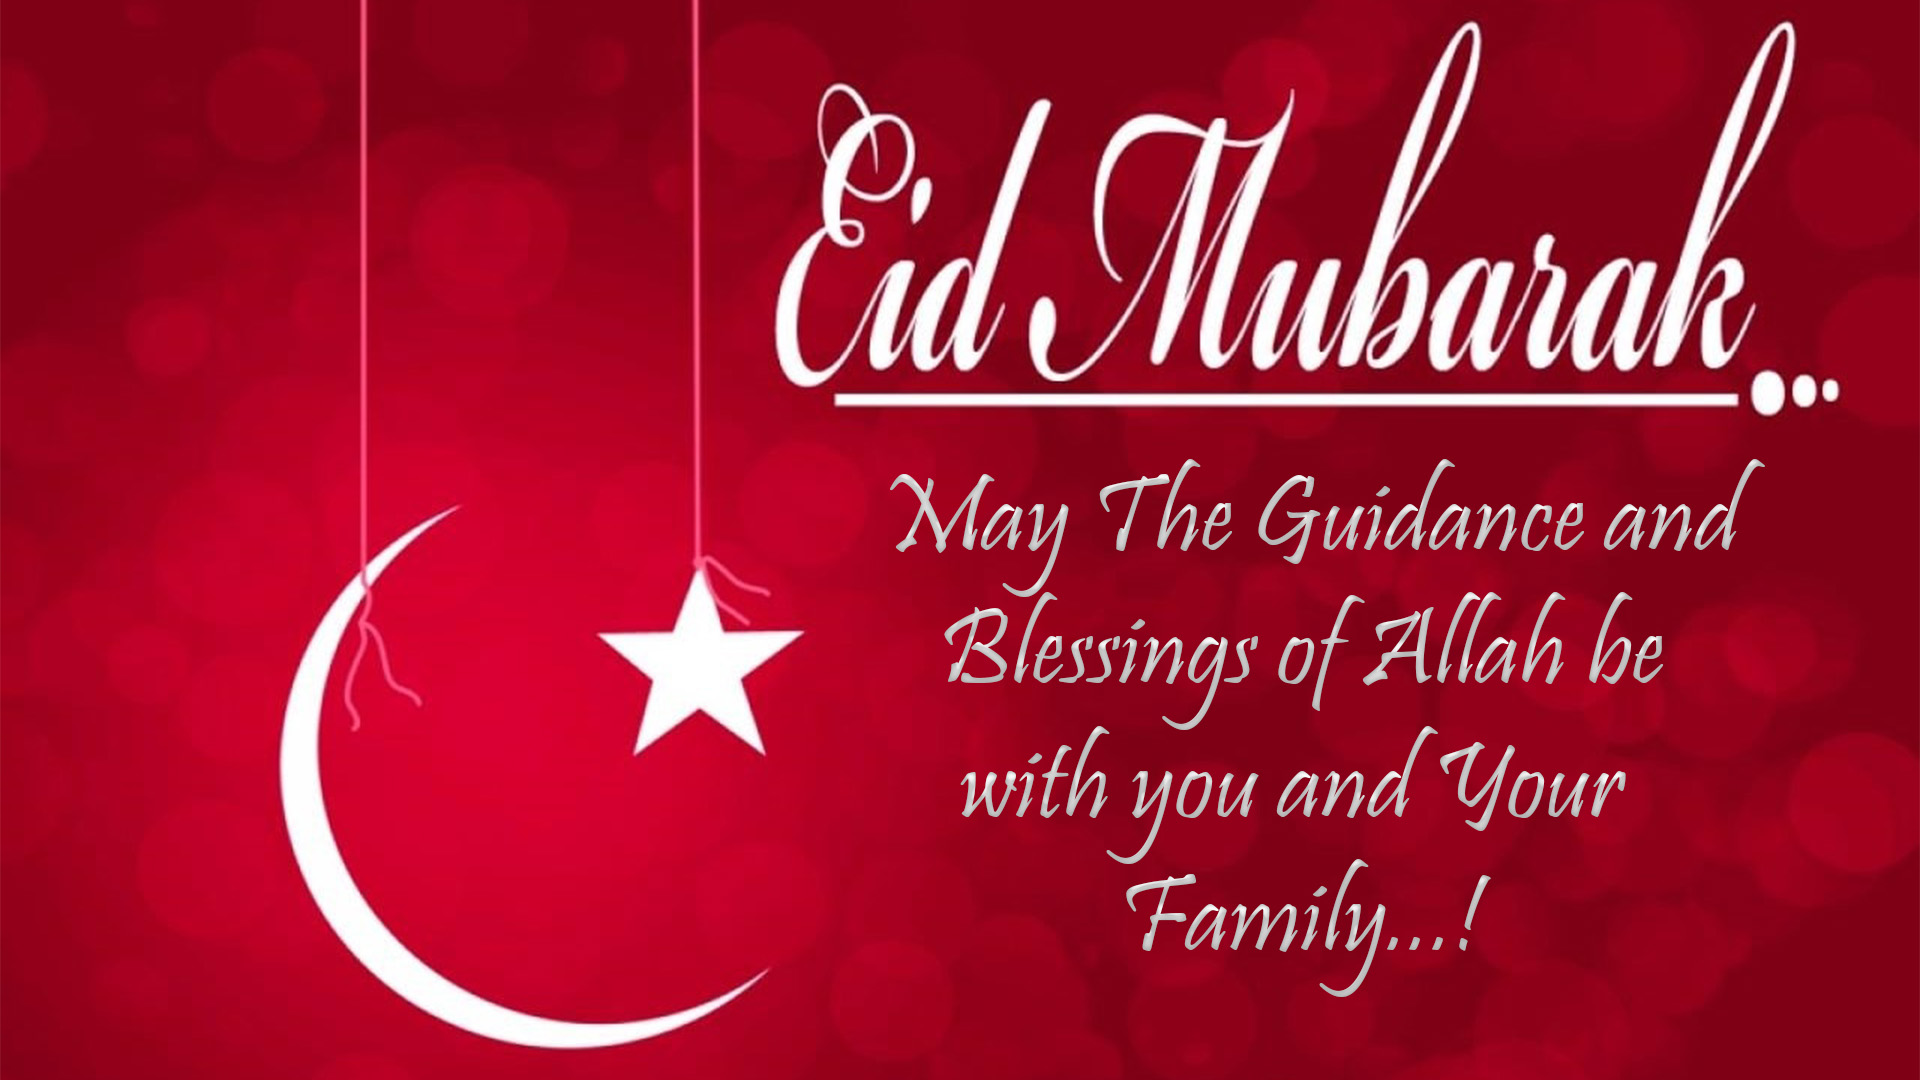 Eid Mubarak Wishes Greetings Messages Images Pictures